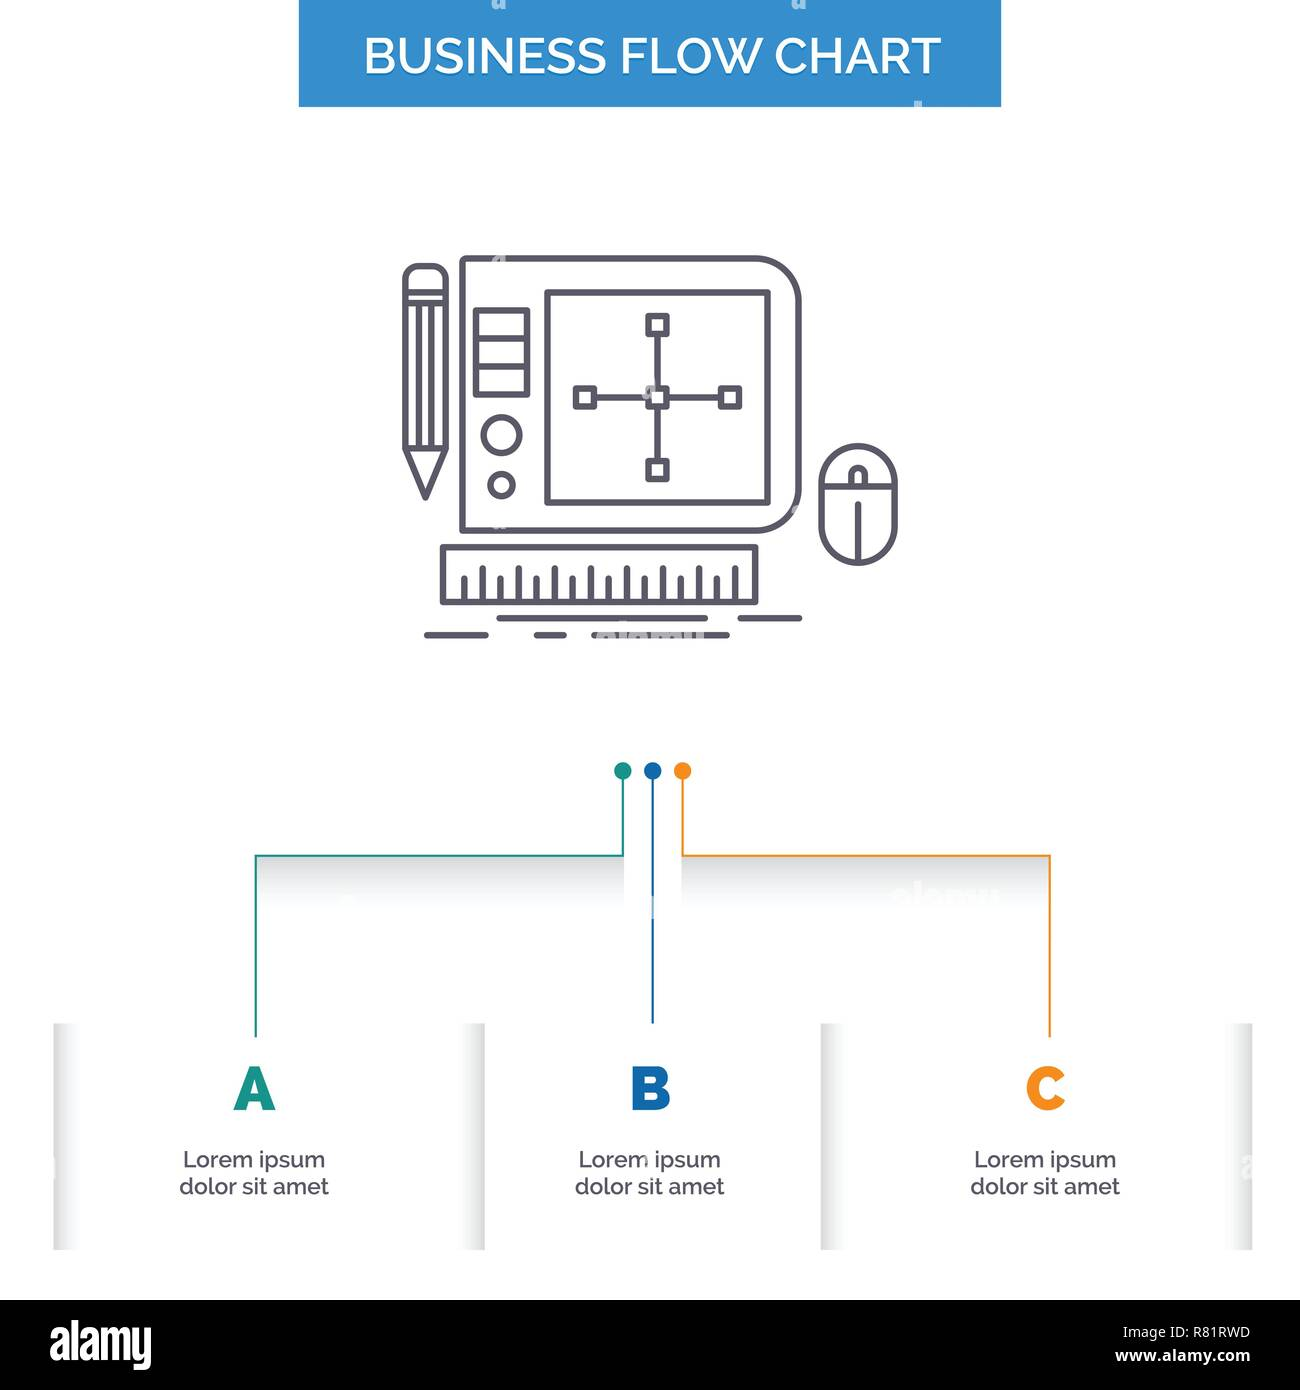 hight resolution of design graphic tool software web designing business flow chart design with 3 steps line icon for presentation background template place for text